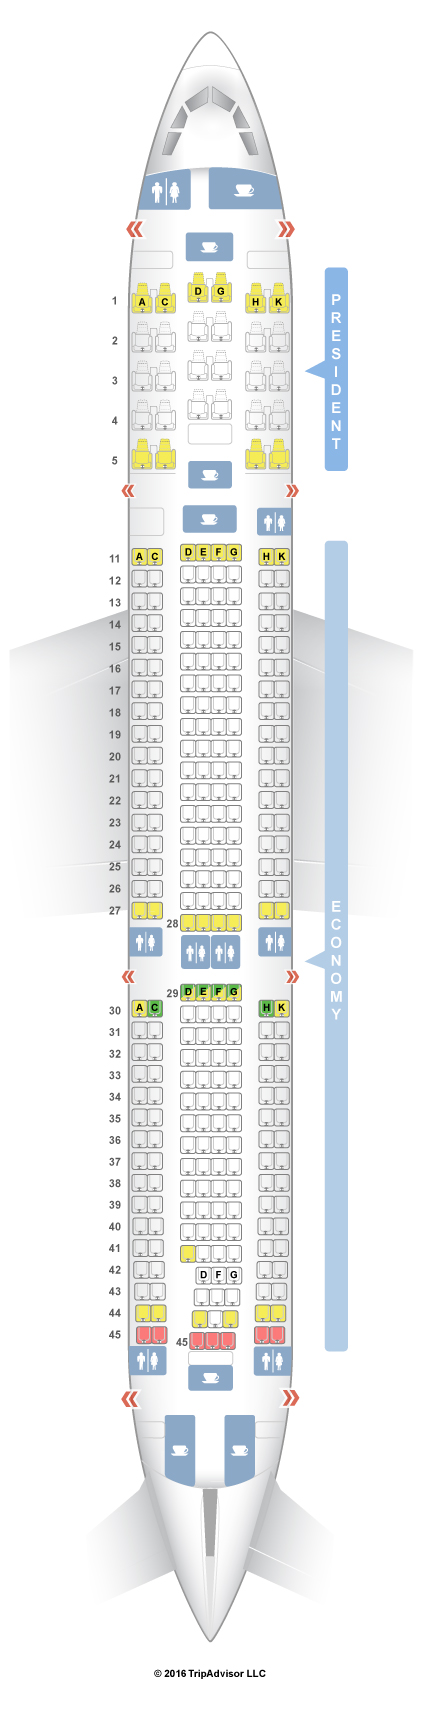 Airbus A330 300 Seating Chart Malaysia Elcho Table